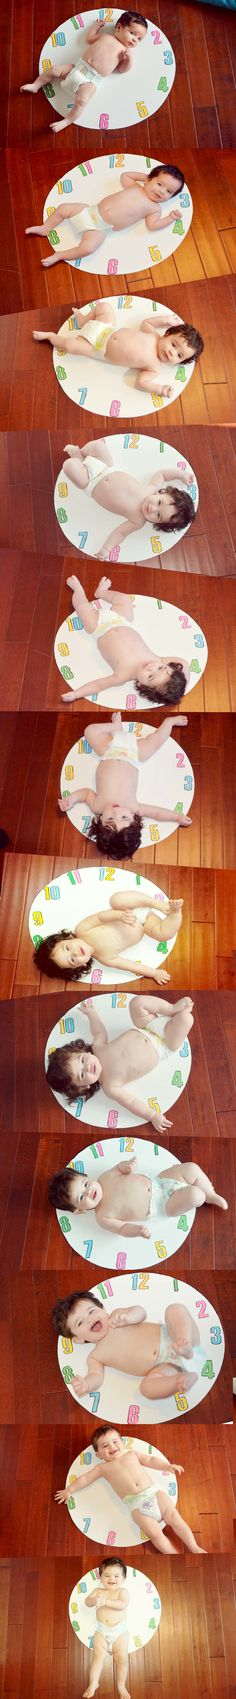 Baby monthly picture ideas clock time